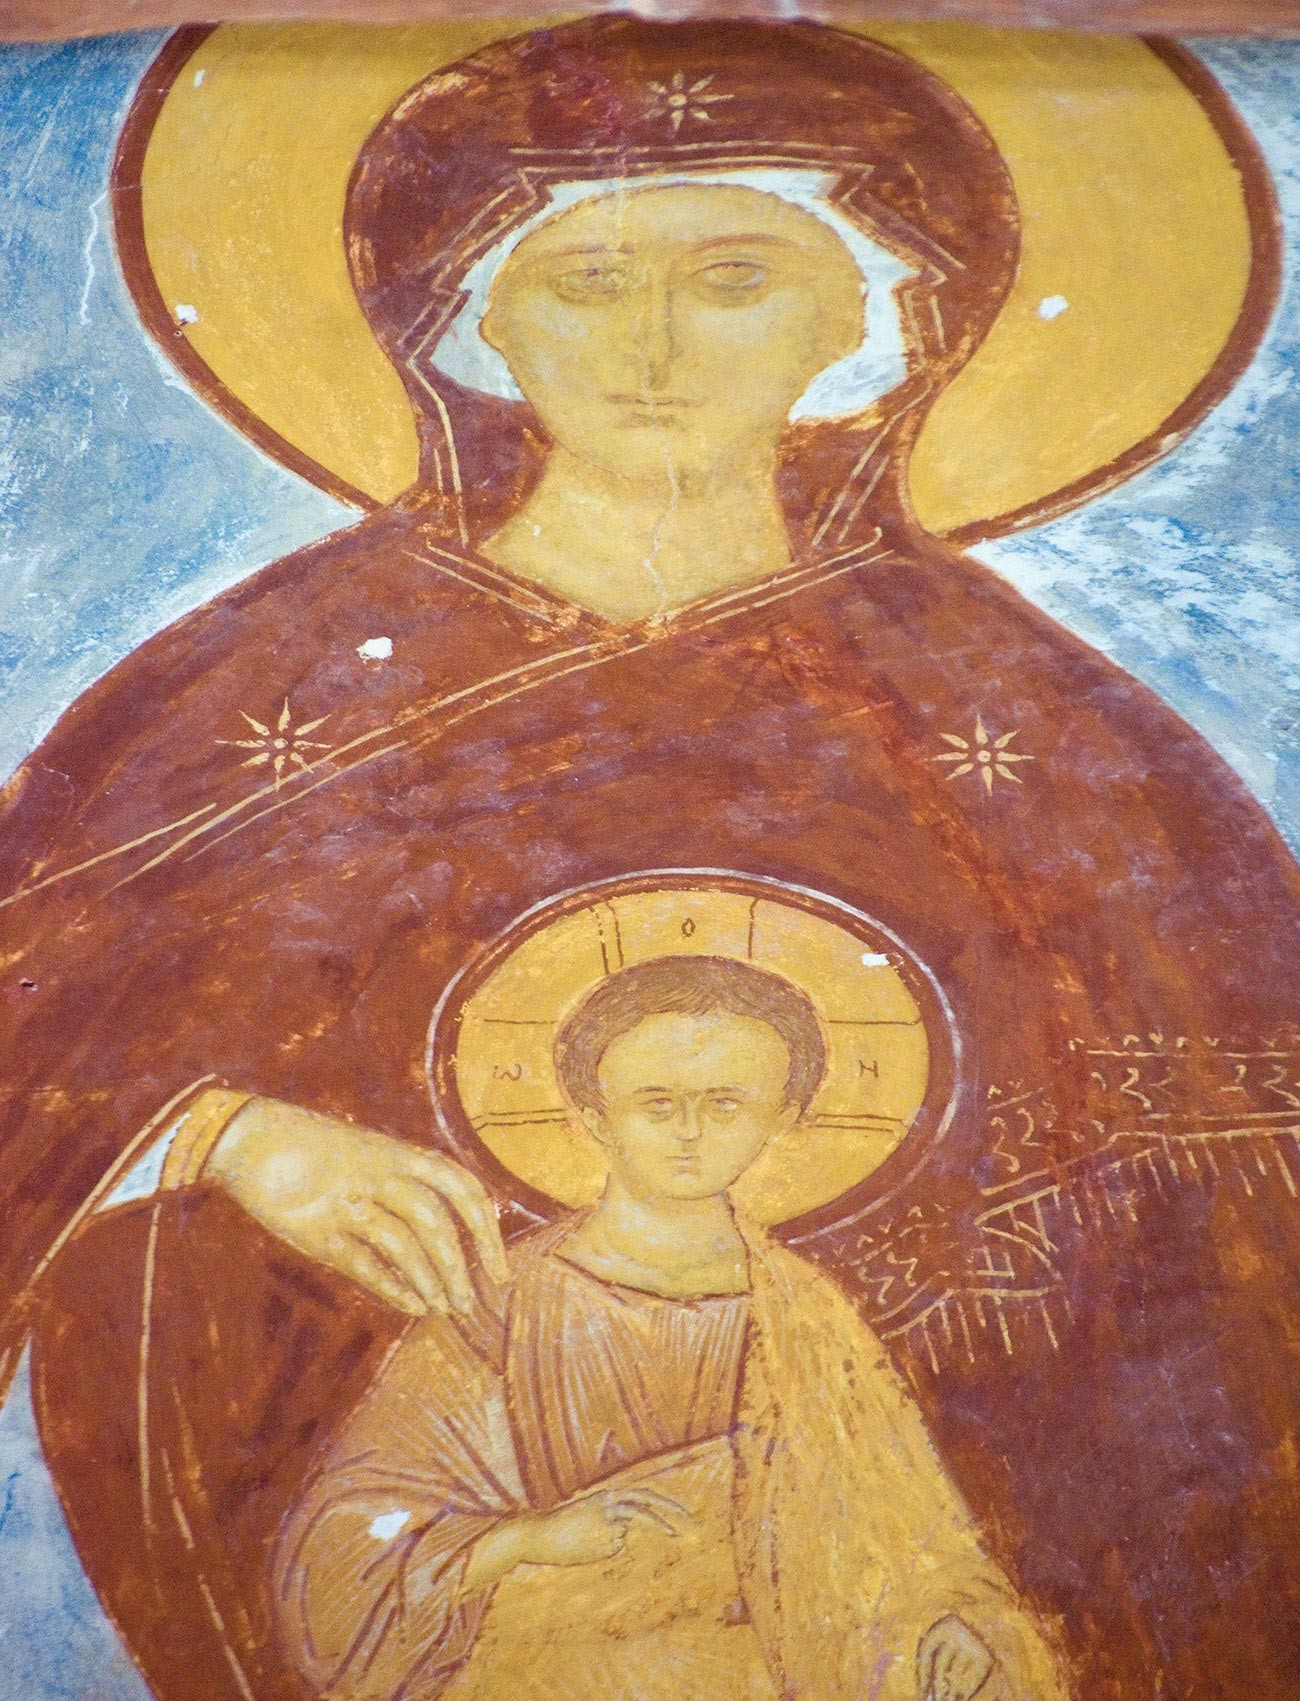 Cathedral of Nativity. Central apse. Fresco of Mary enthroned with Christ Child. June 1, 2014